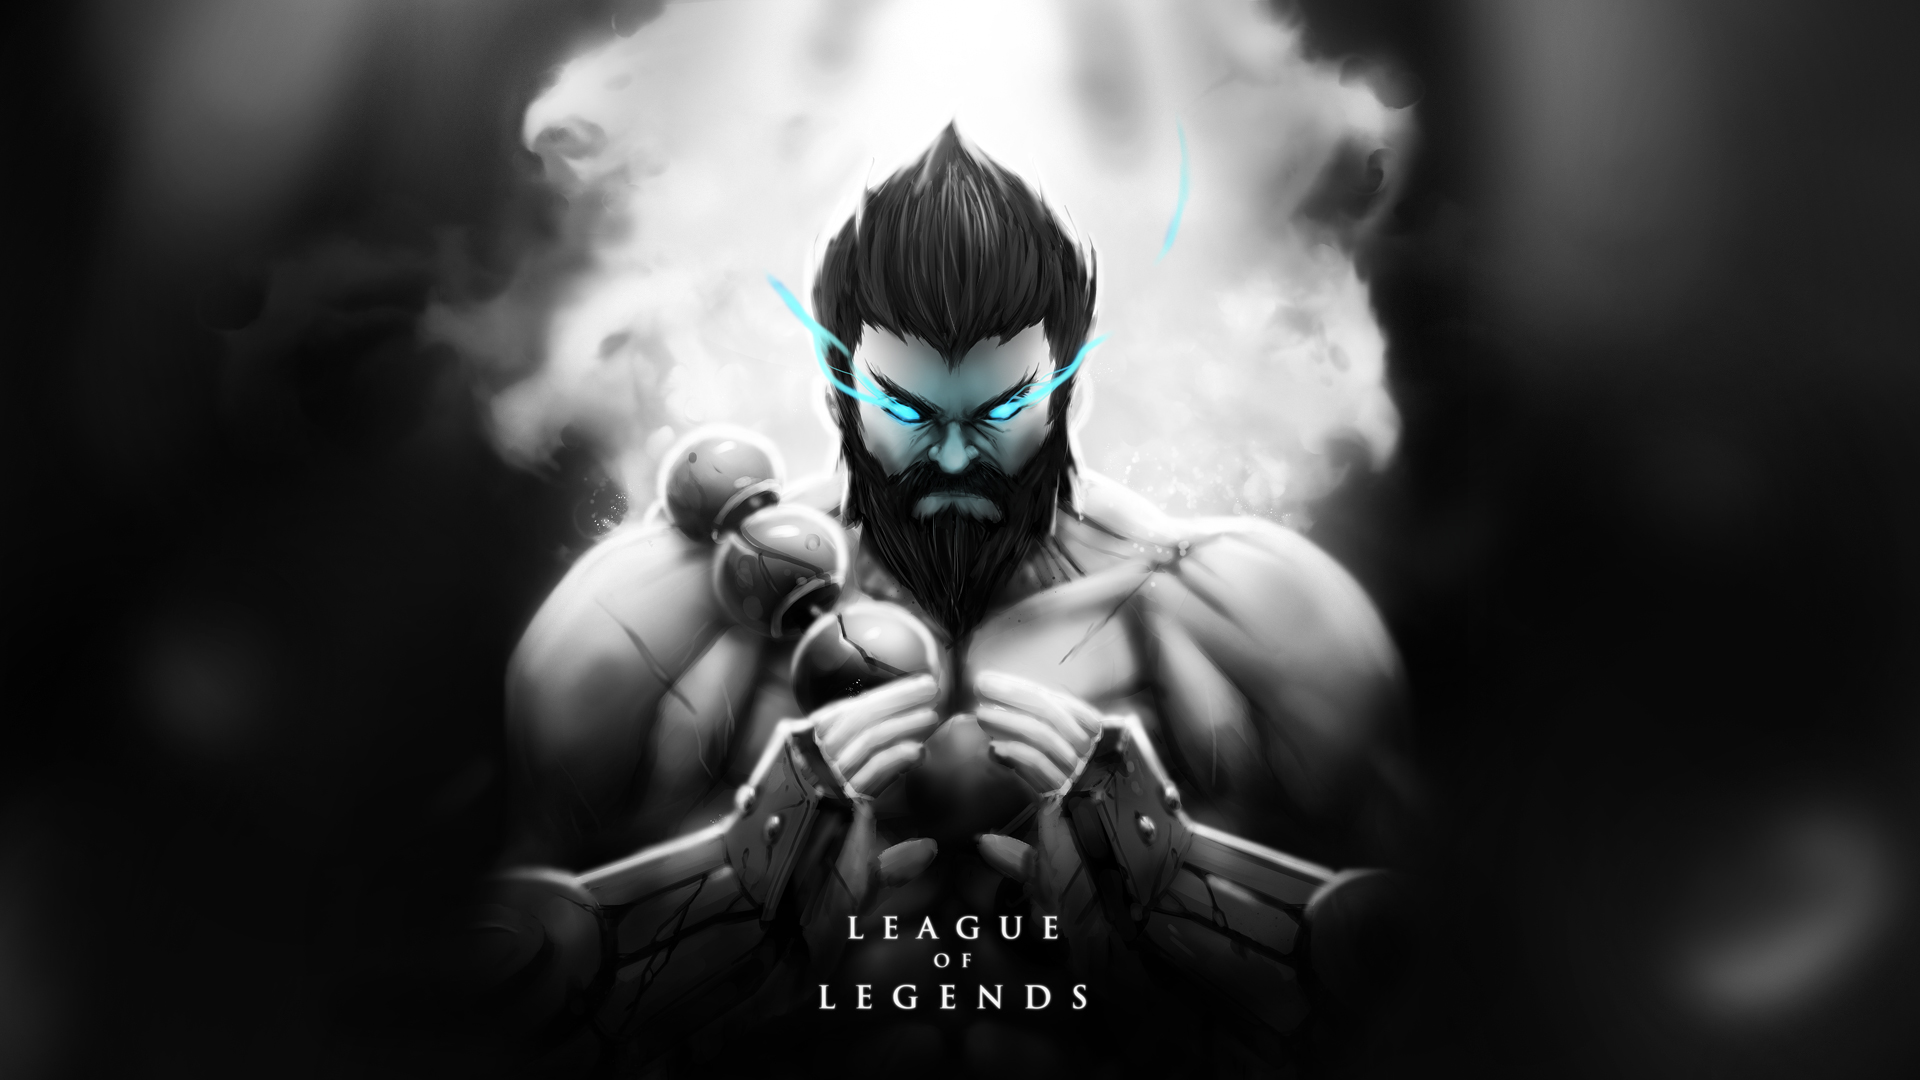 League of Legends wallpaper 91